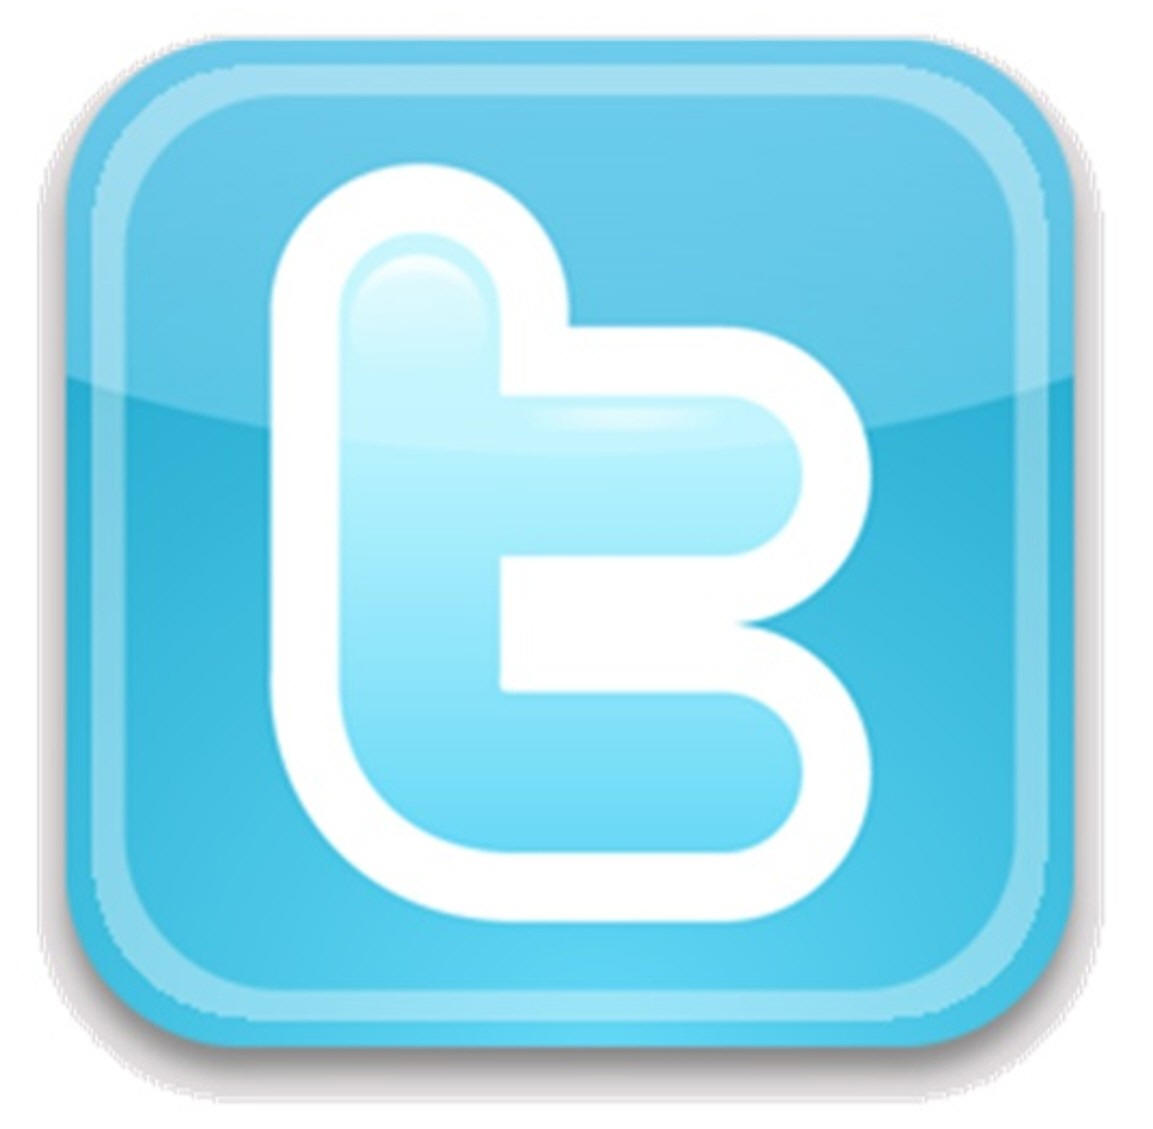 twitter logo copy and paste awesome graphic library